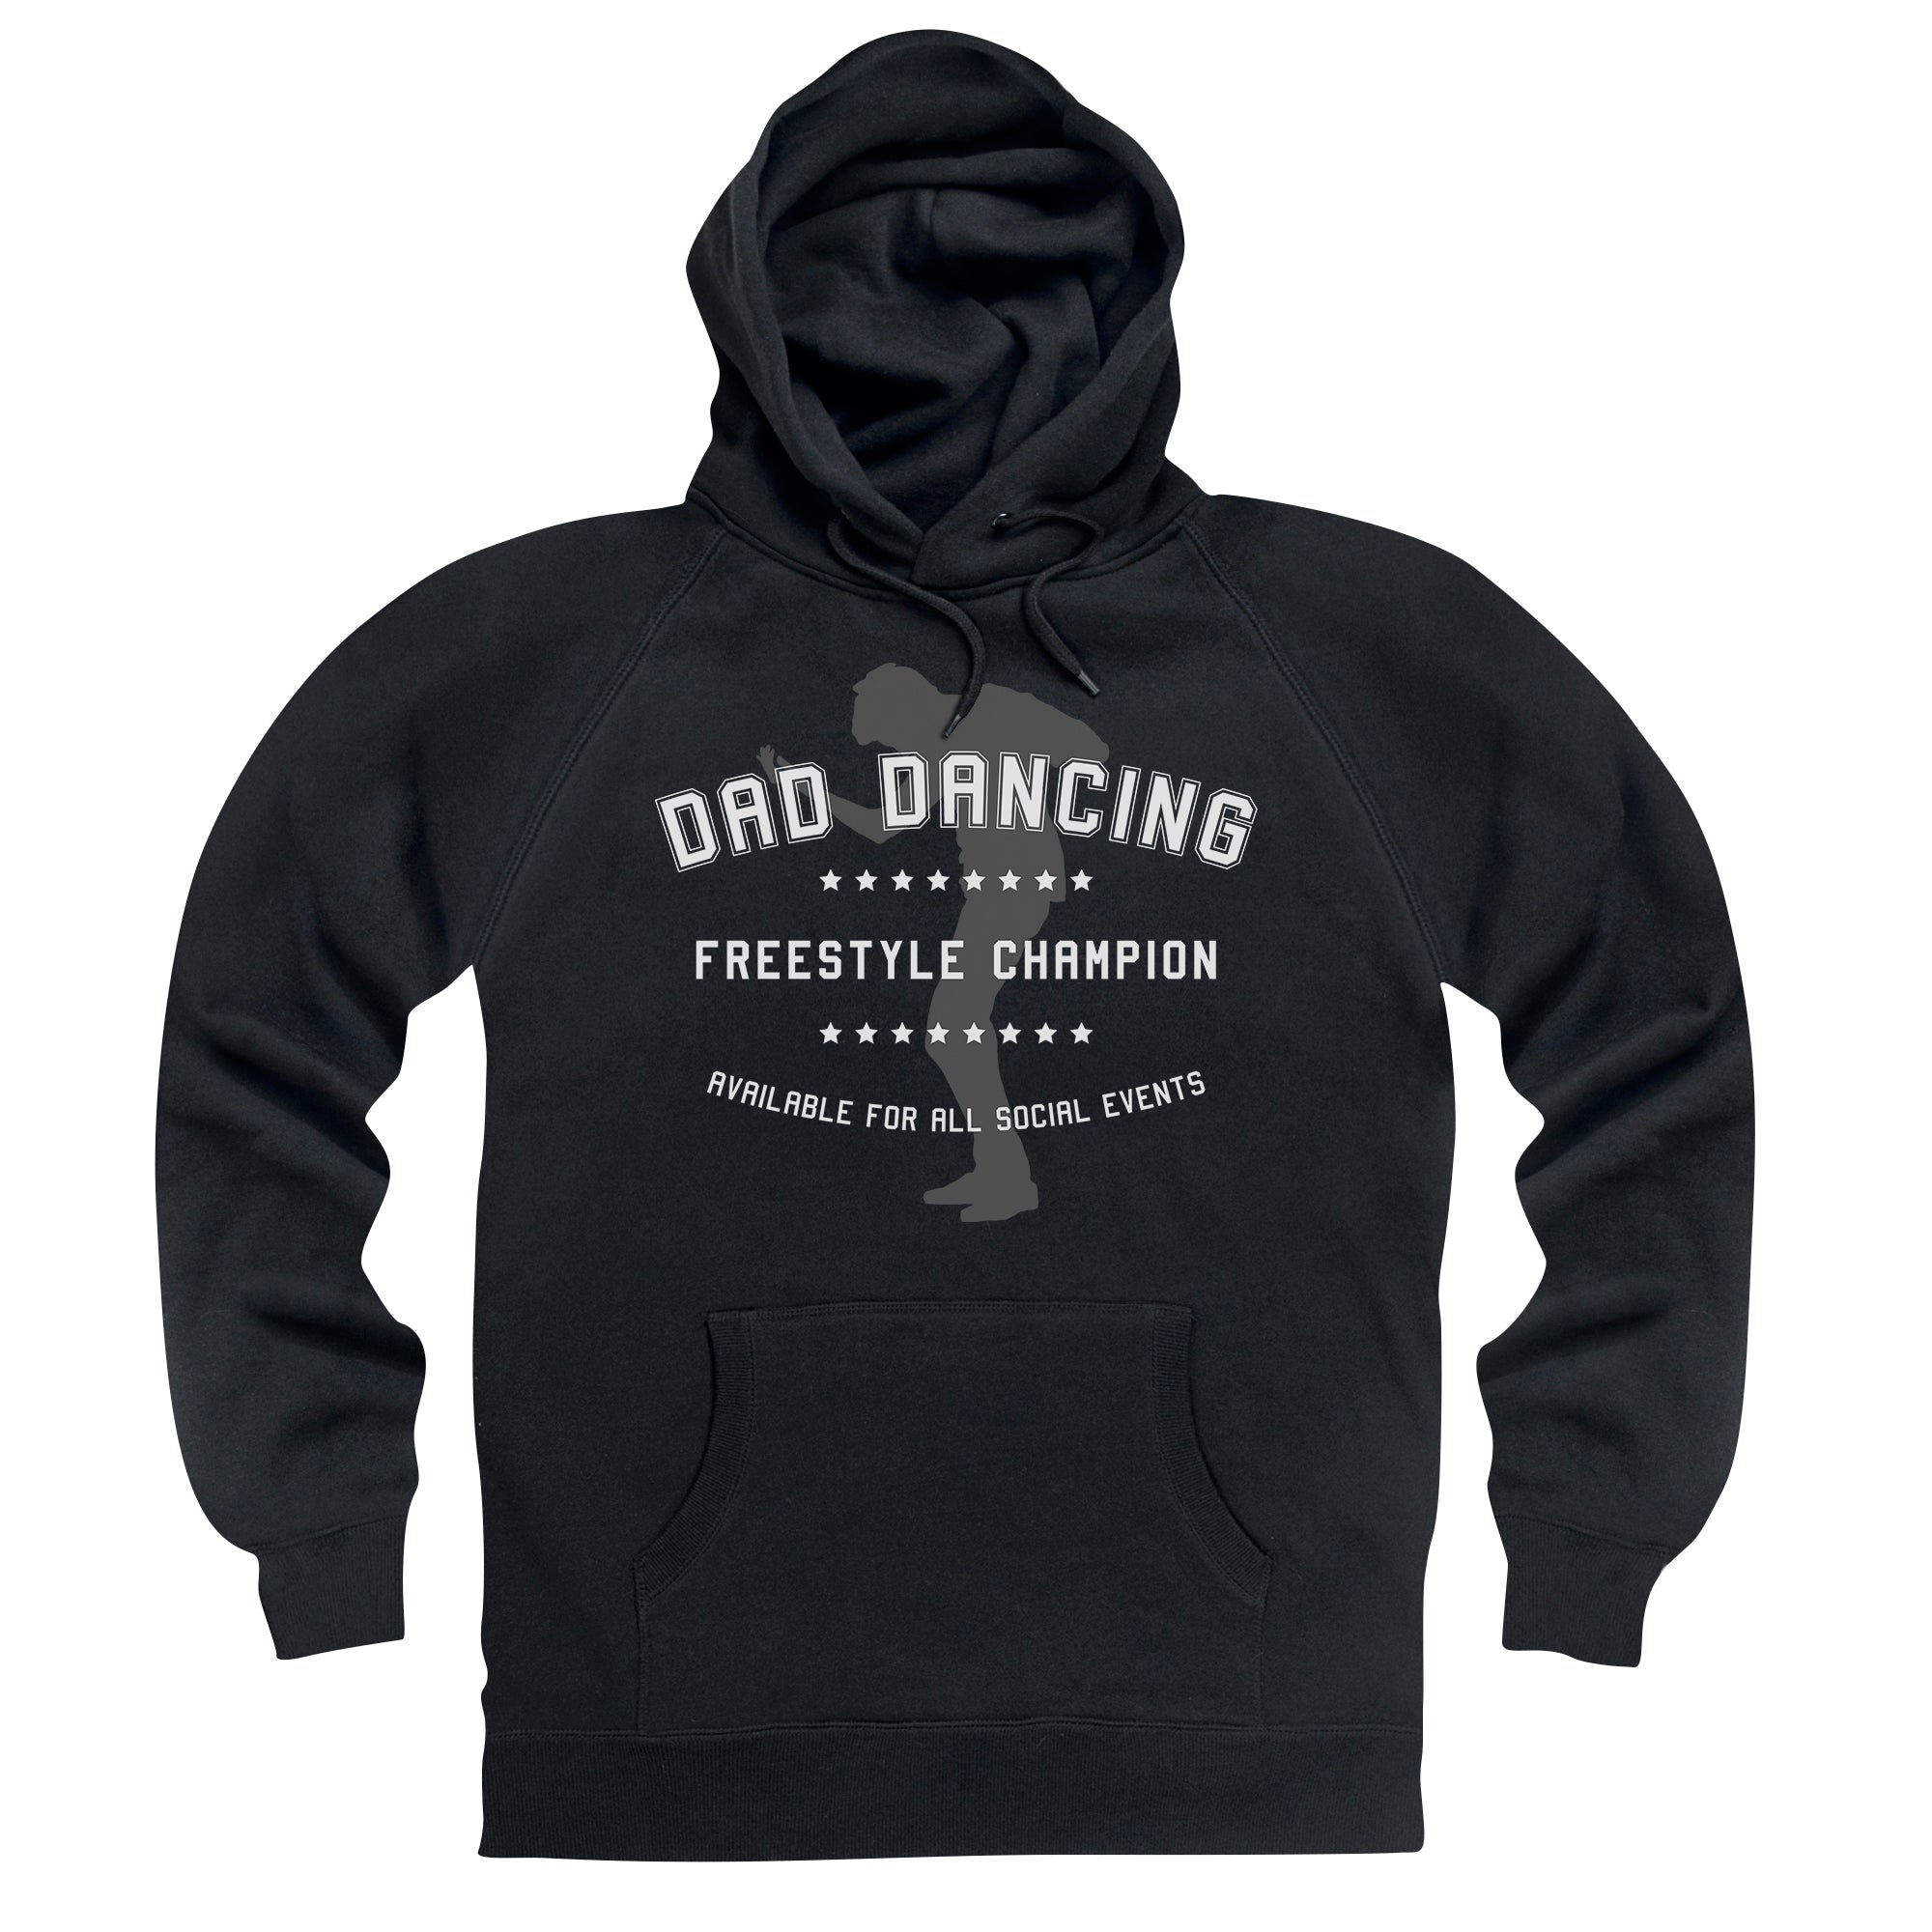 CHEAP Dad Dancing Freestyle Champion Hoodie 25735409311 – Clothing Accessories